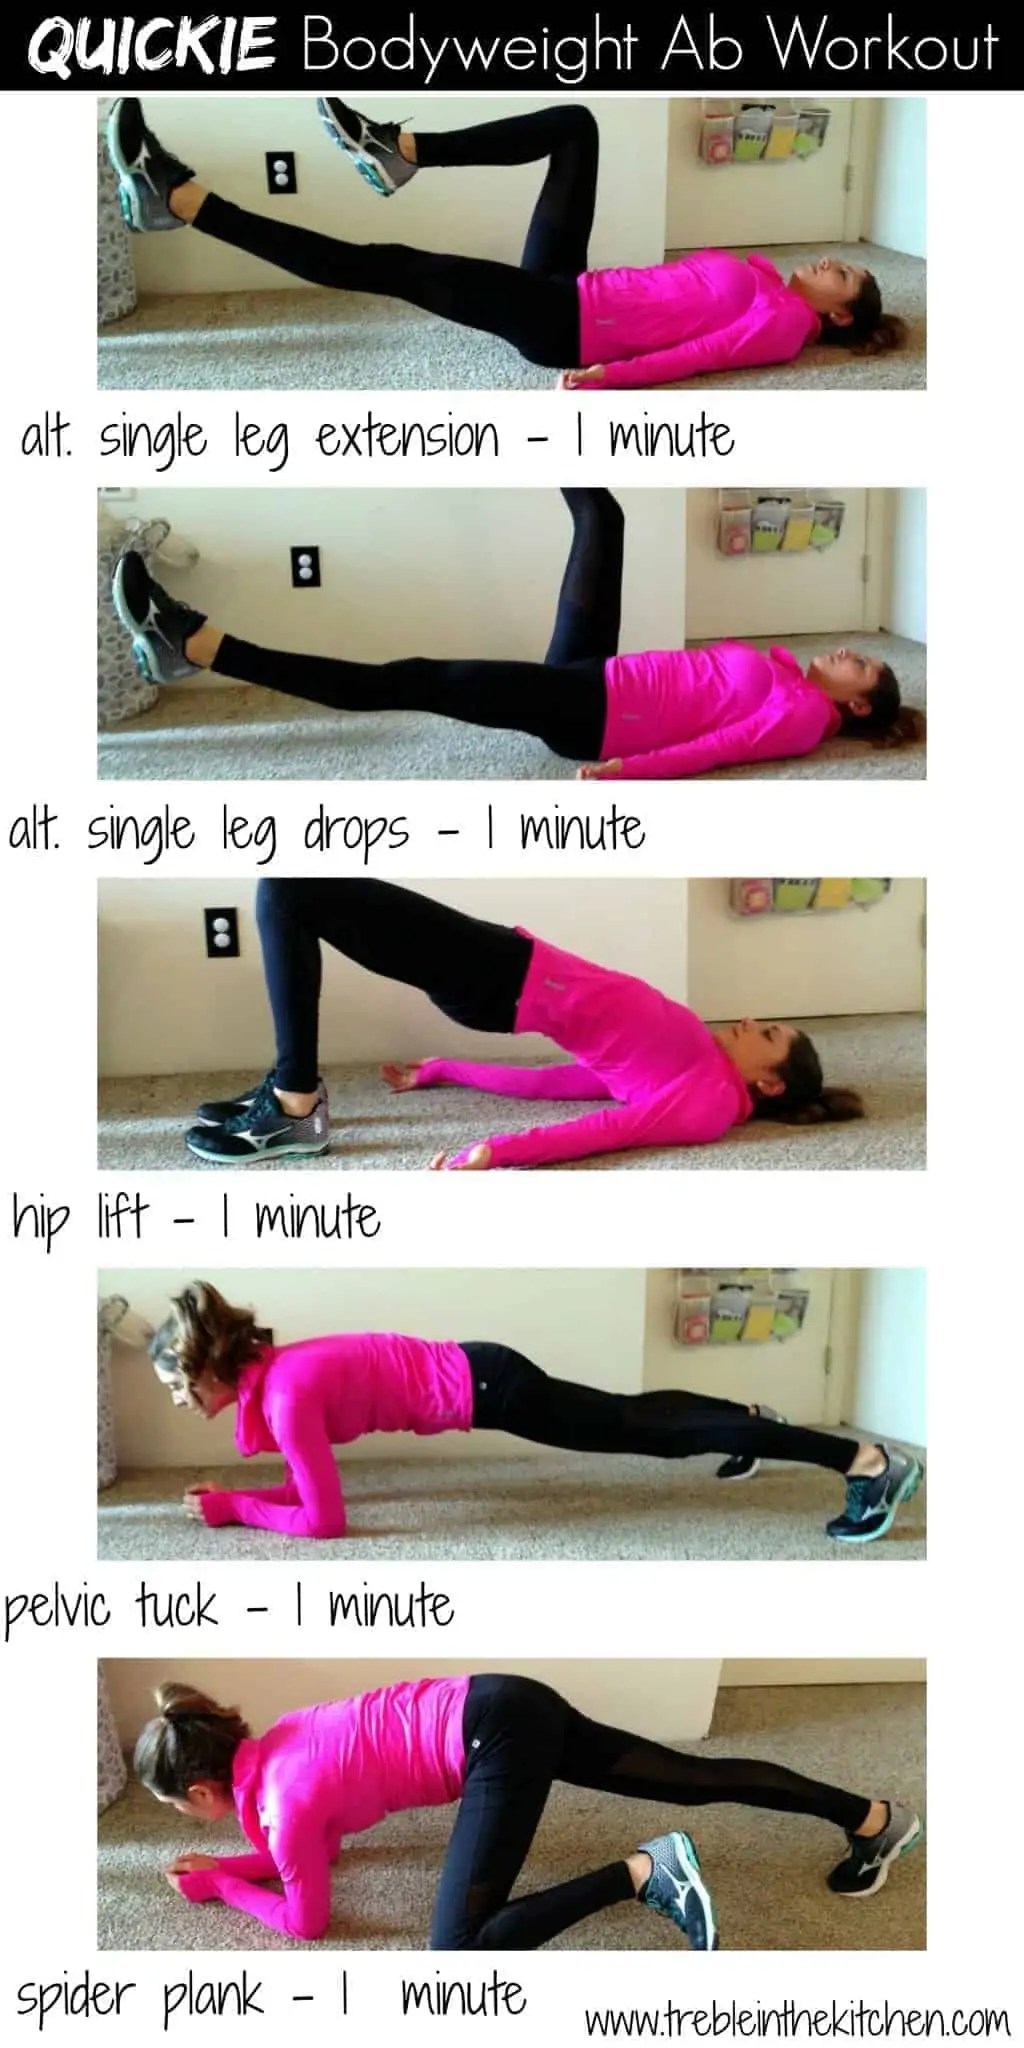 Quickie Bodyweight Ab Workout_Treble in the Kitchen